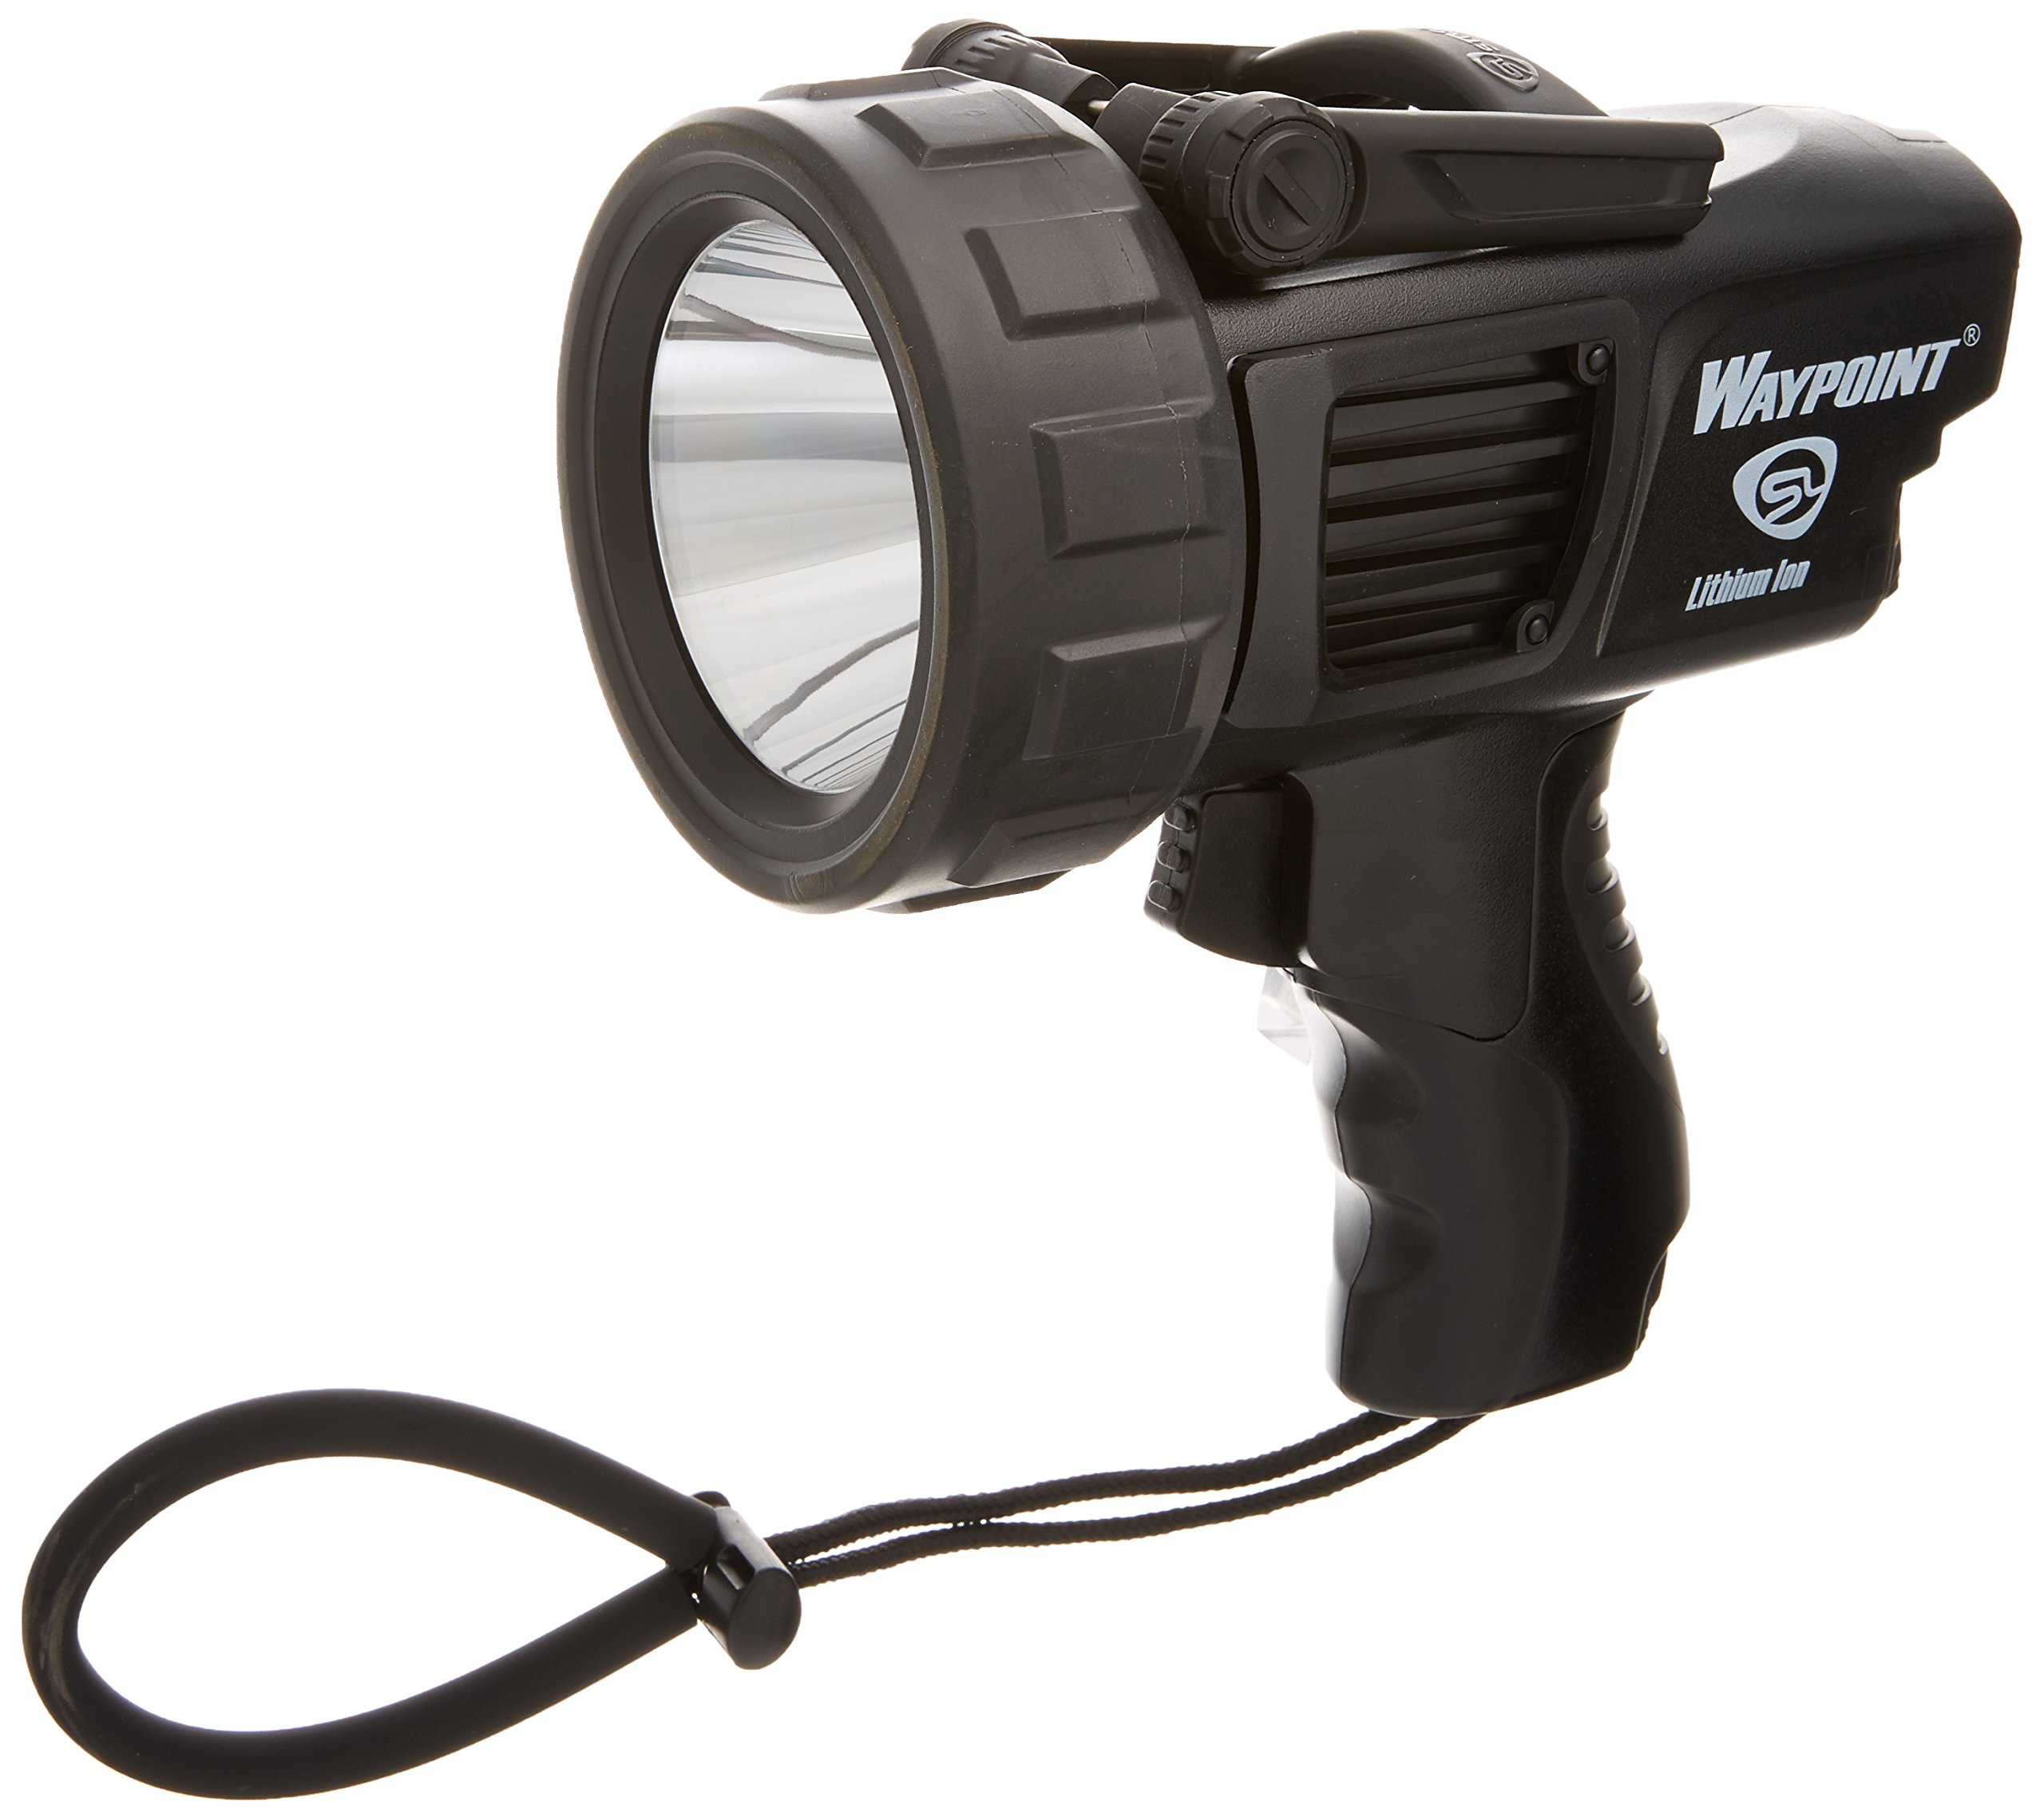 Streamlight 44911 Waypoint Spotlight with 120-Volt AC Charger, Black - 1000 Lumens